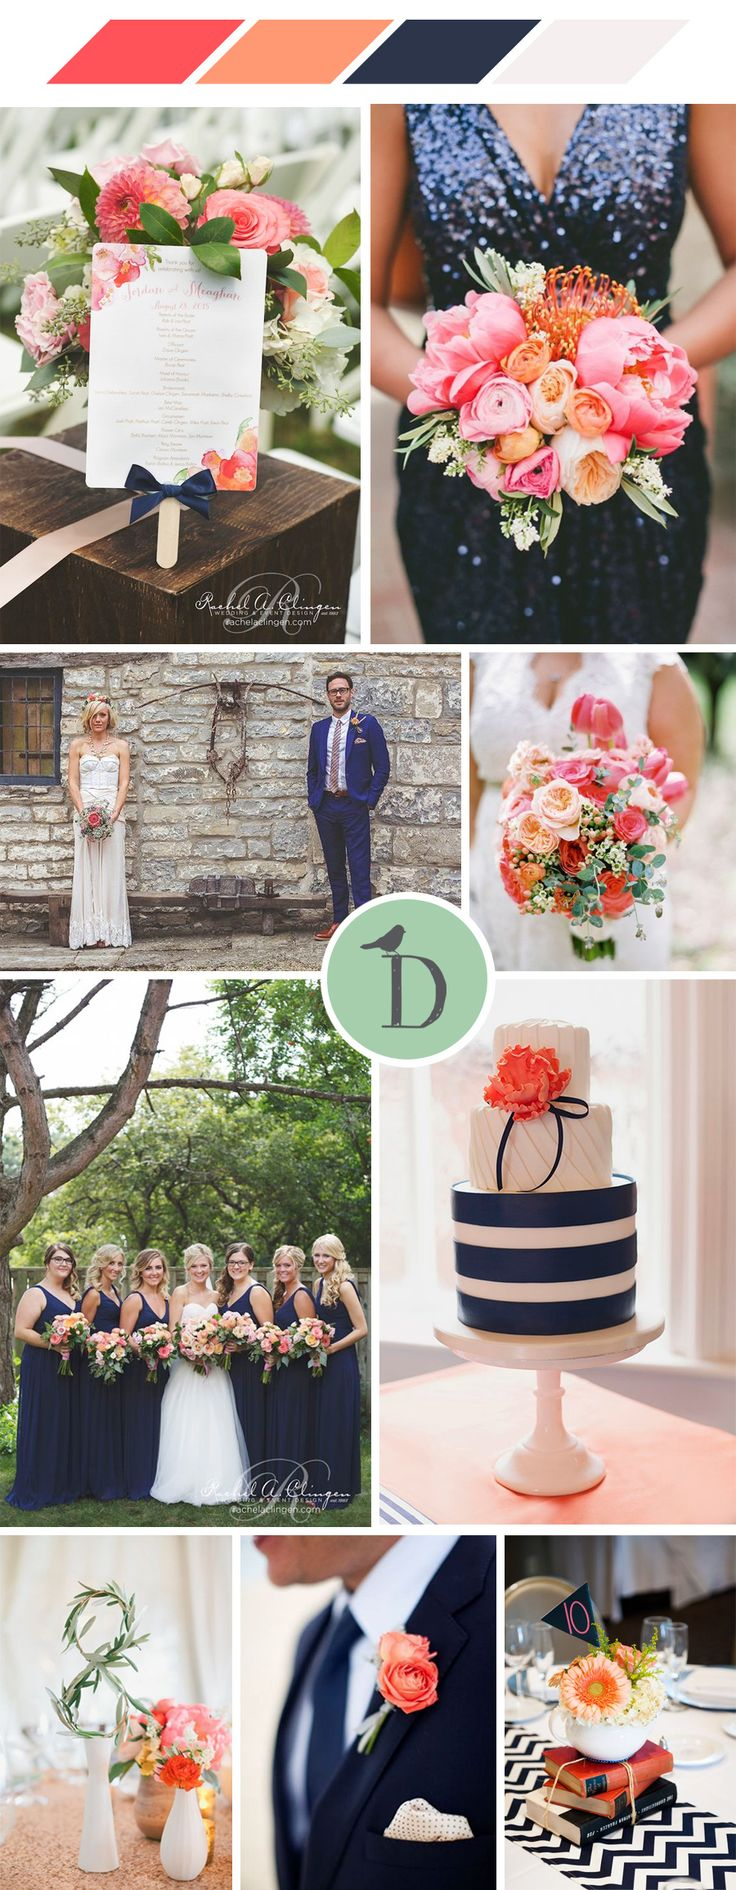 Get inspired by this navy and coral wedding color scheme. Fresh and vibrant, but still classic, the dark navy really makes those fresh pinks and oranges stand out. We love blousy, super glamorous peonies in mixed coral shades against strong geometric prints